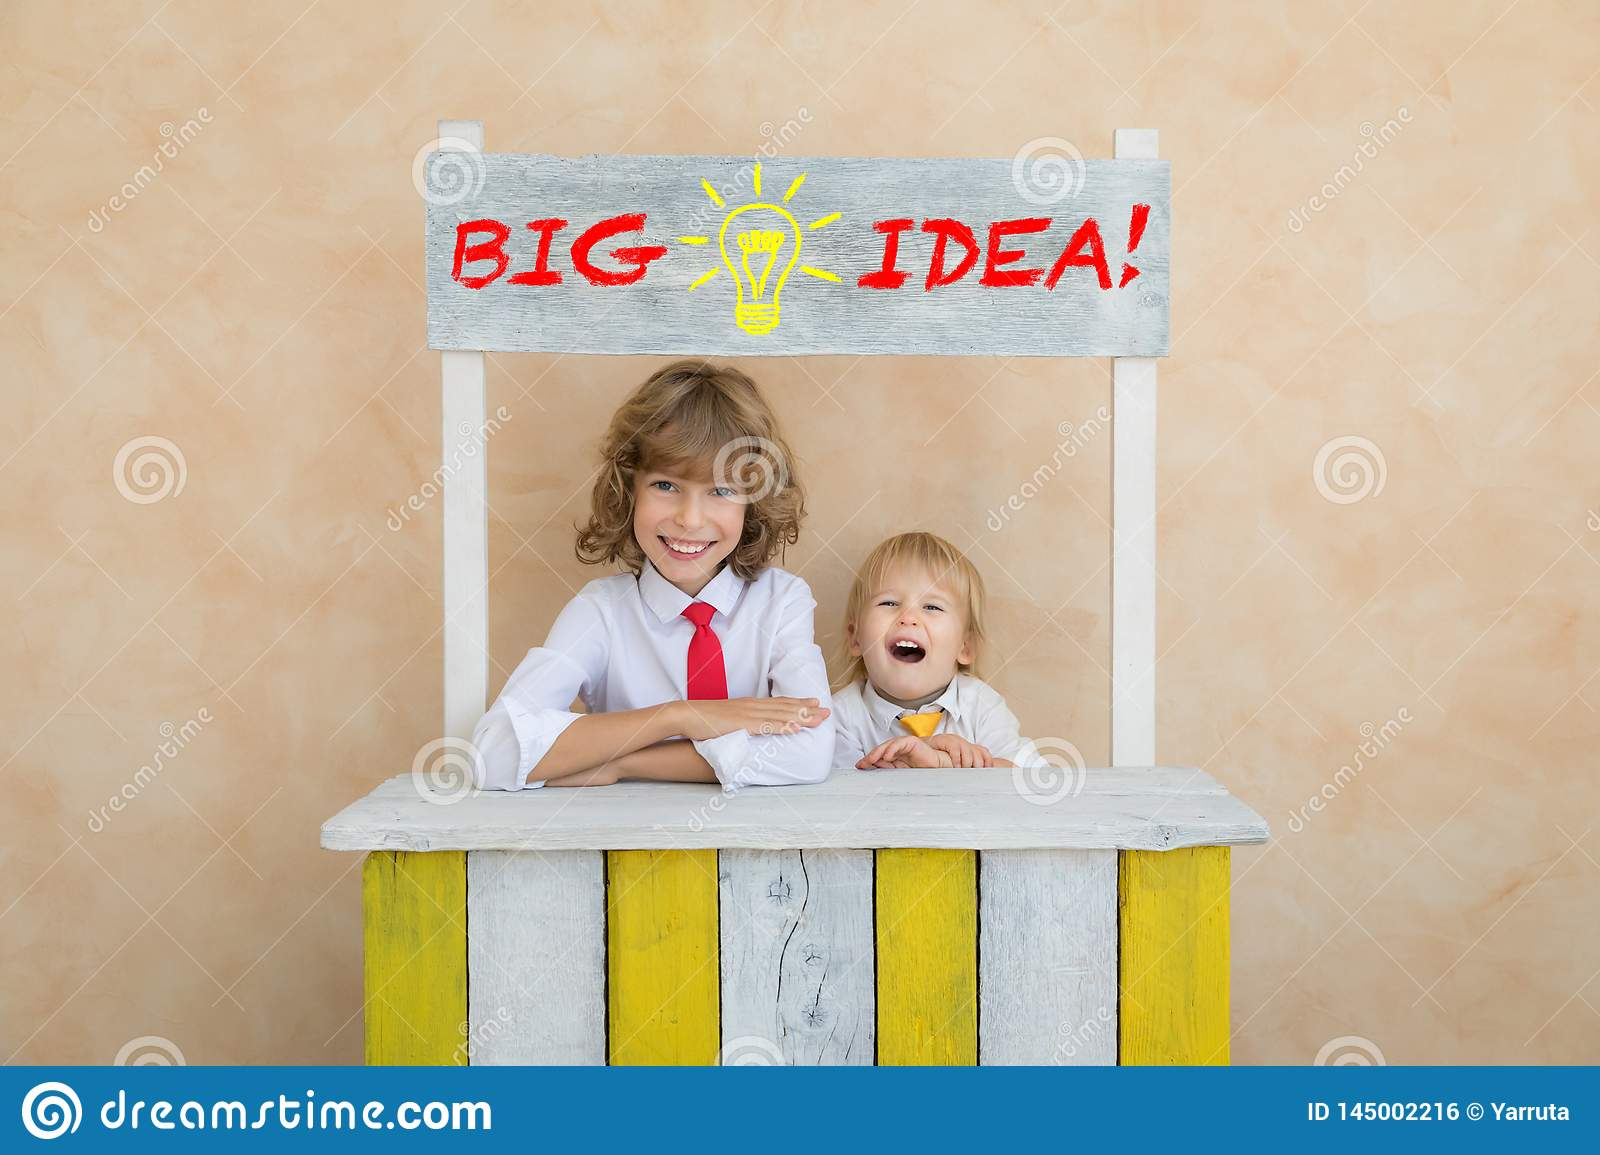 Success, start up and business idea concept